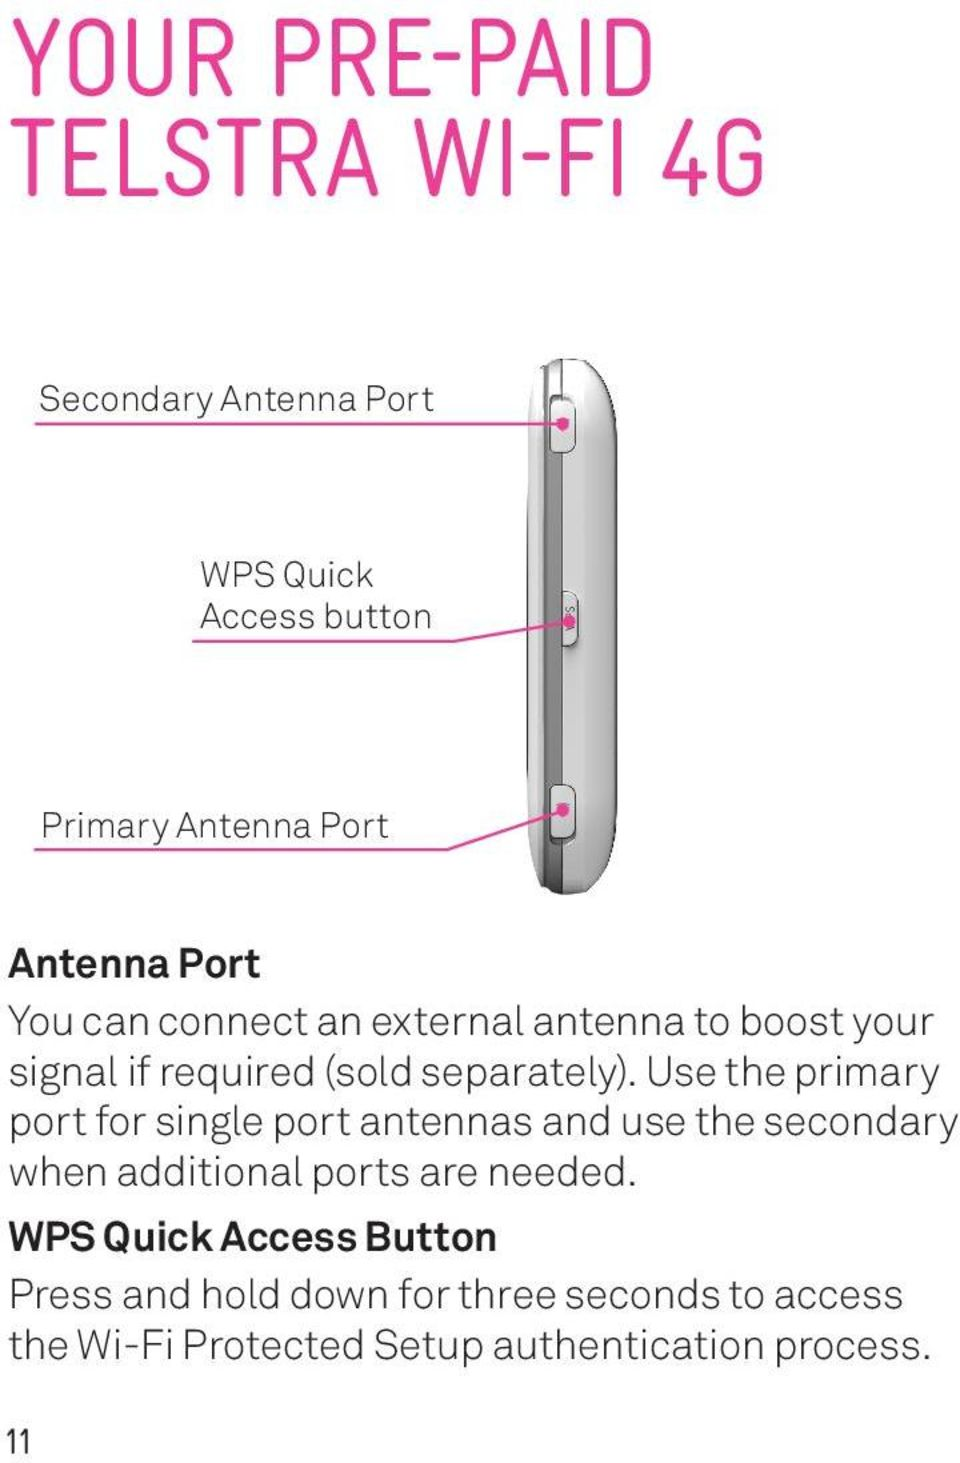 Use the primary port for single port antennas and use the secondary when additional ports are needed.